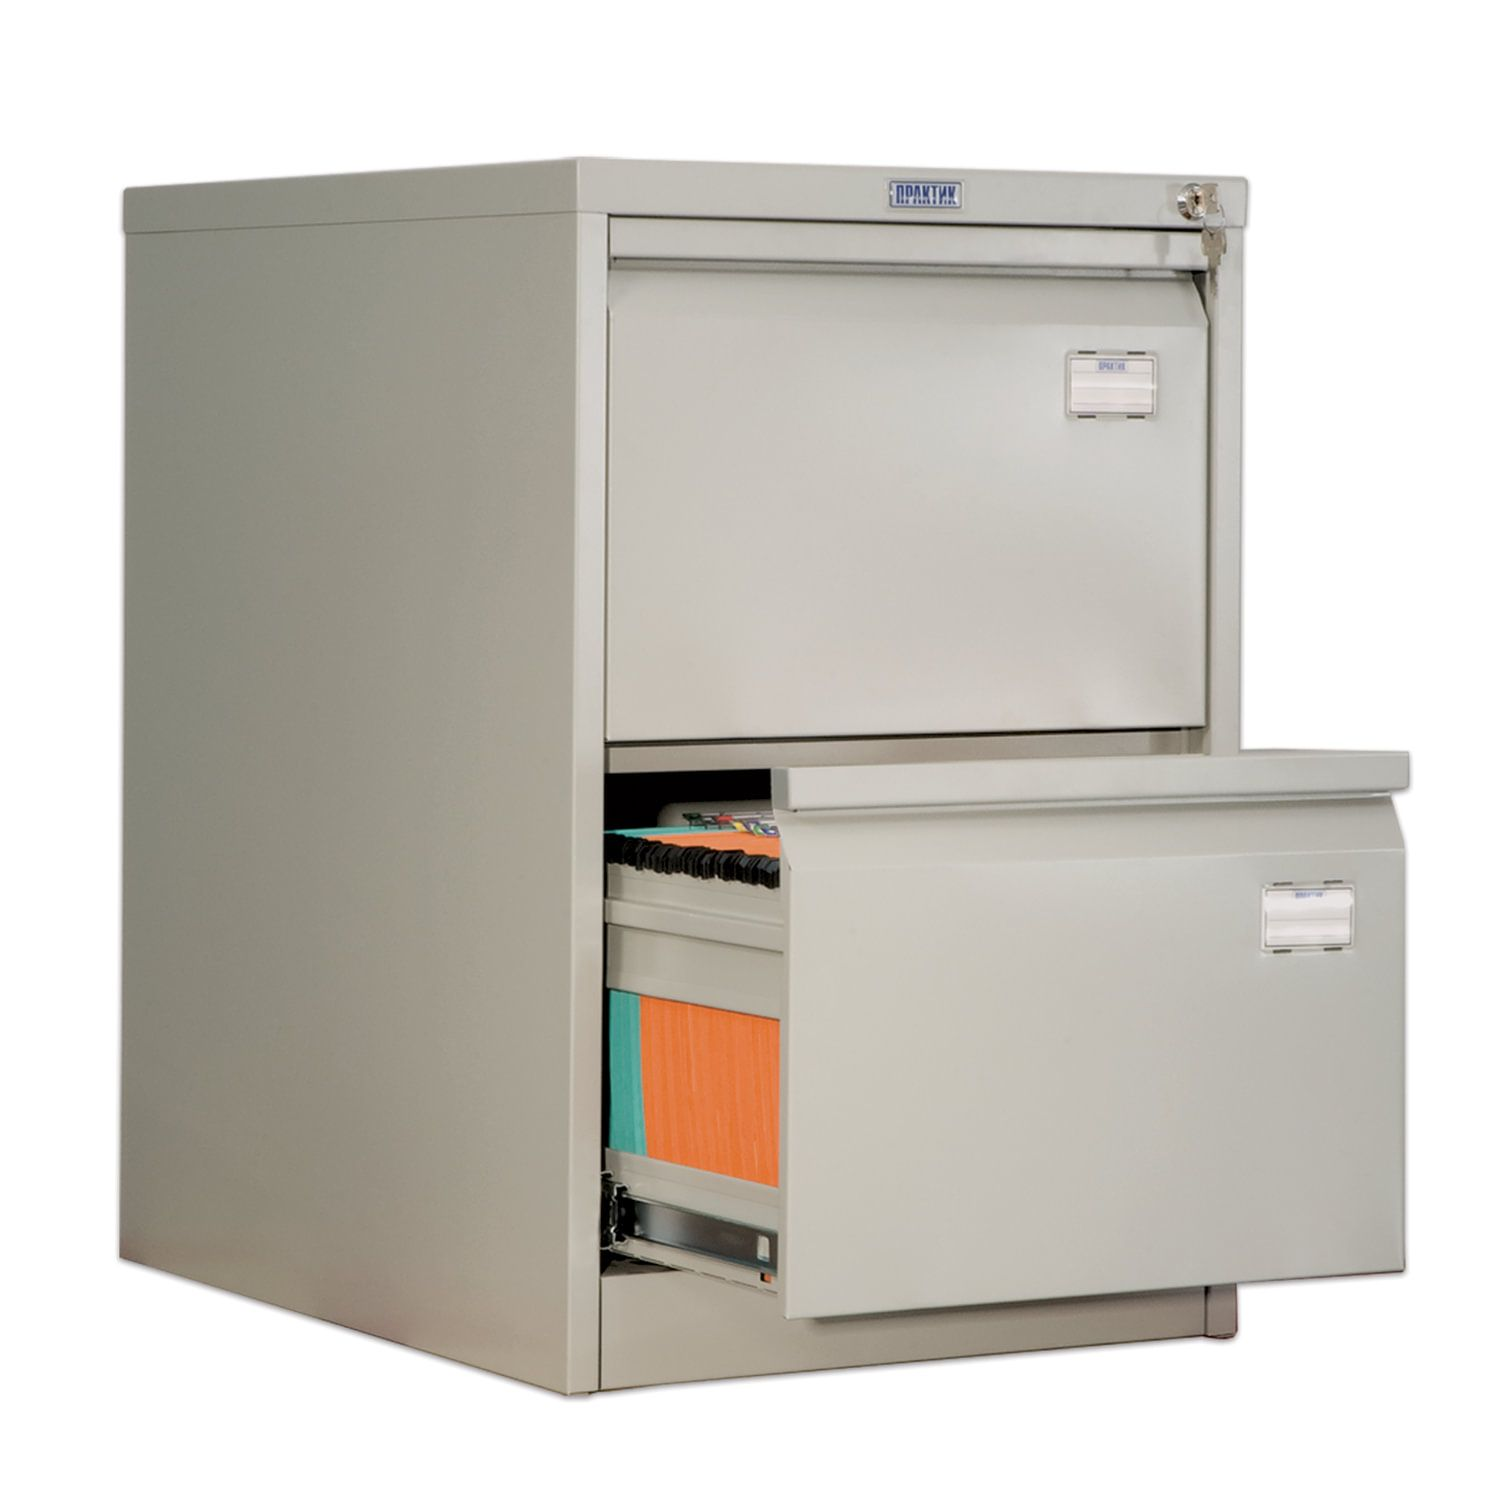 AFC-02 card cabinet, 713 x467 x630 mm, 2 boxes, for 110 hanging folders, Foolscap or A4 folder format (NO FOLDERs)